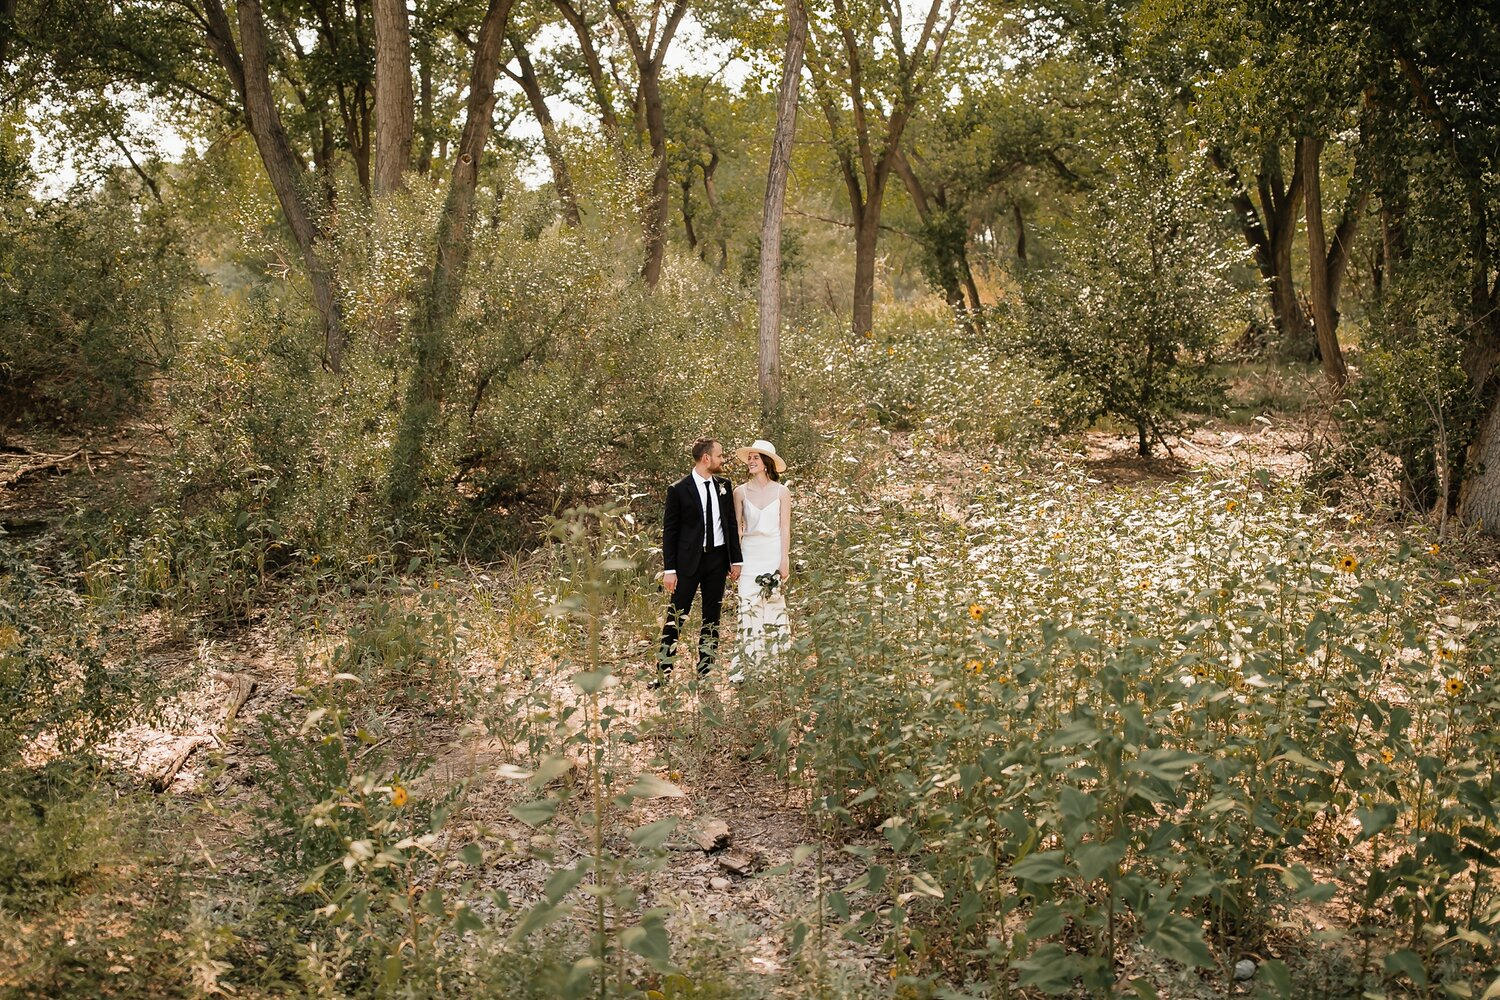 Alicia+lucia+photography+-+albuquerque+wedding+photographer+-+santa+fe+wedding+photography+-+new+mexico+wedding+photographer+-+new+mexico+wedding+-+old+town+wedding+-+casa+de+suenos+wedding+-+hotel+albuquerque+wedding_0087.jpg